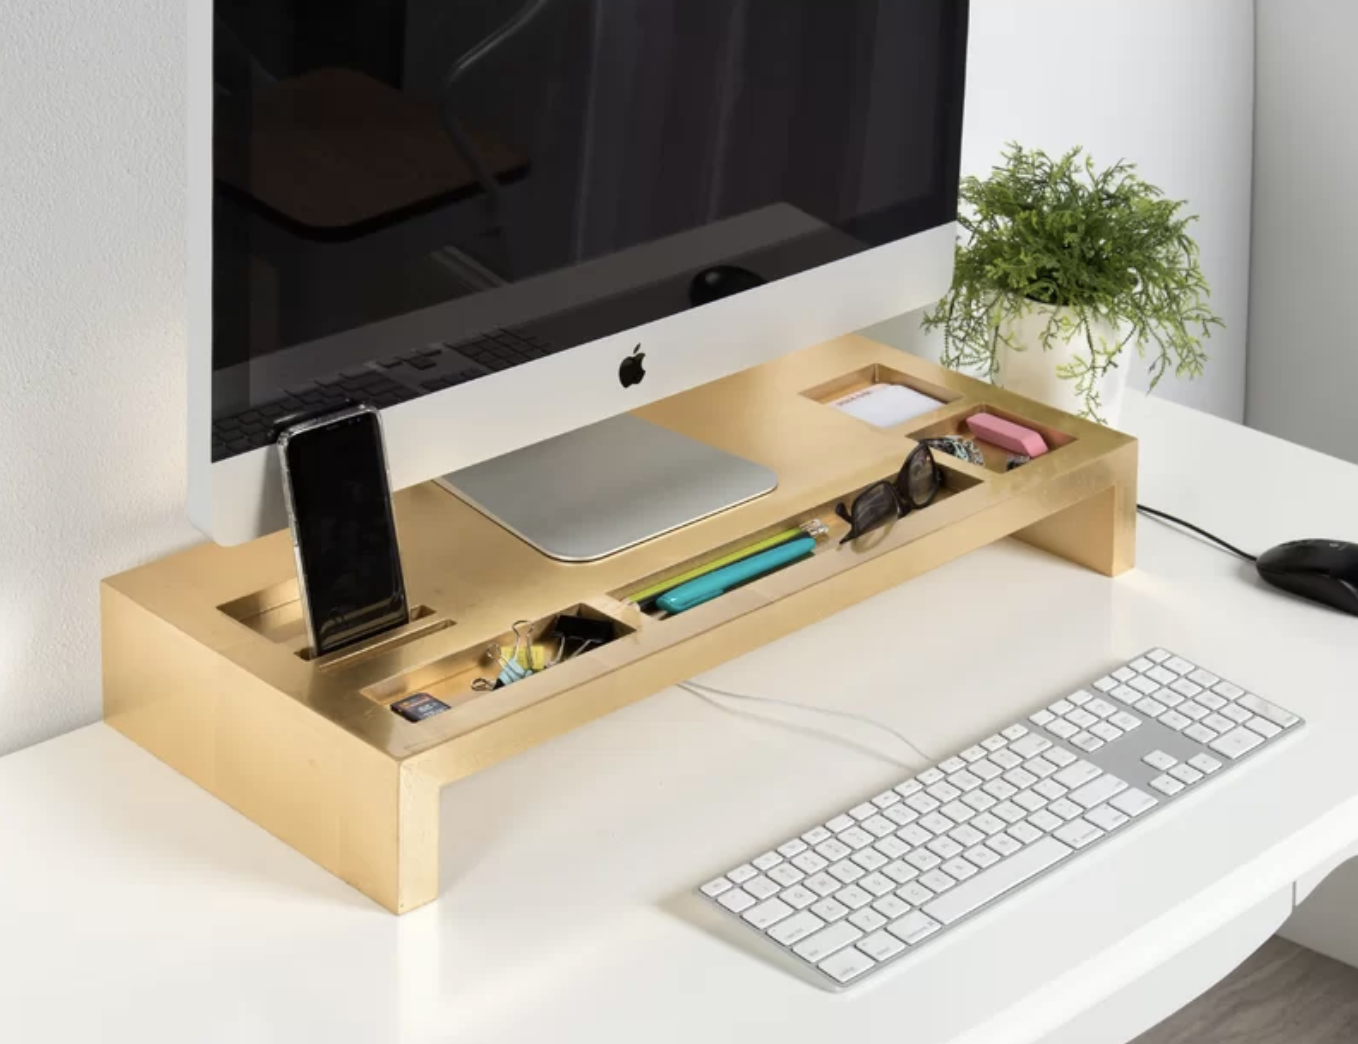 the gold monitor stand with a computer on it, a phone, and compartments filled with pens, glasses, and other office supplies